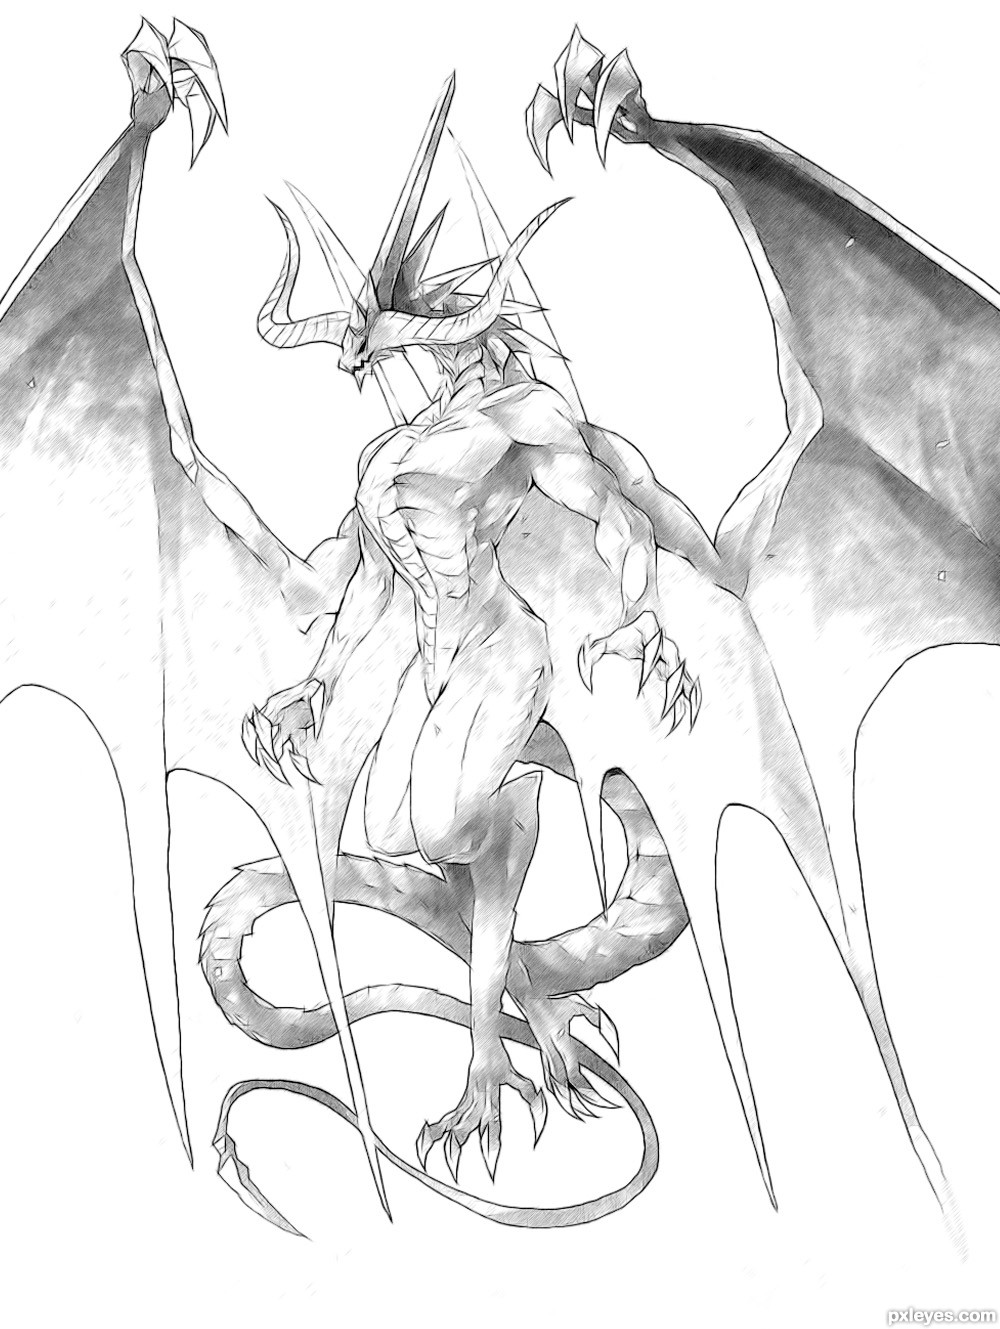 Drawing Contest Pictures of Dragon - Image Page 2 ...